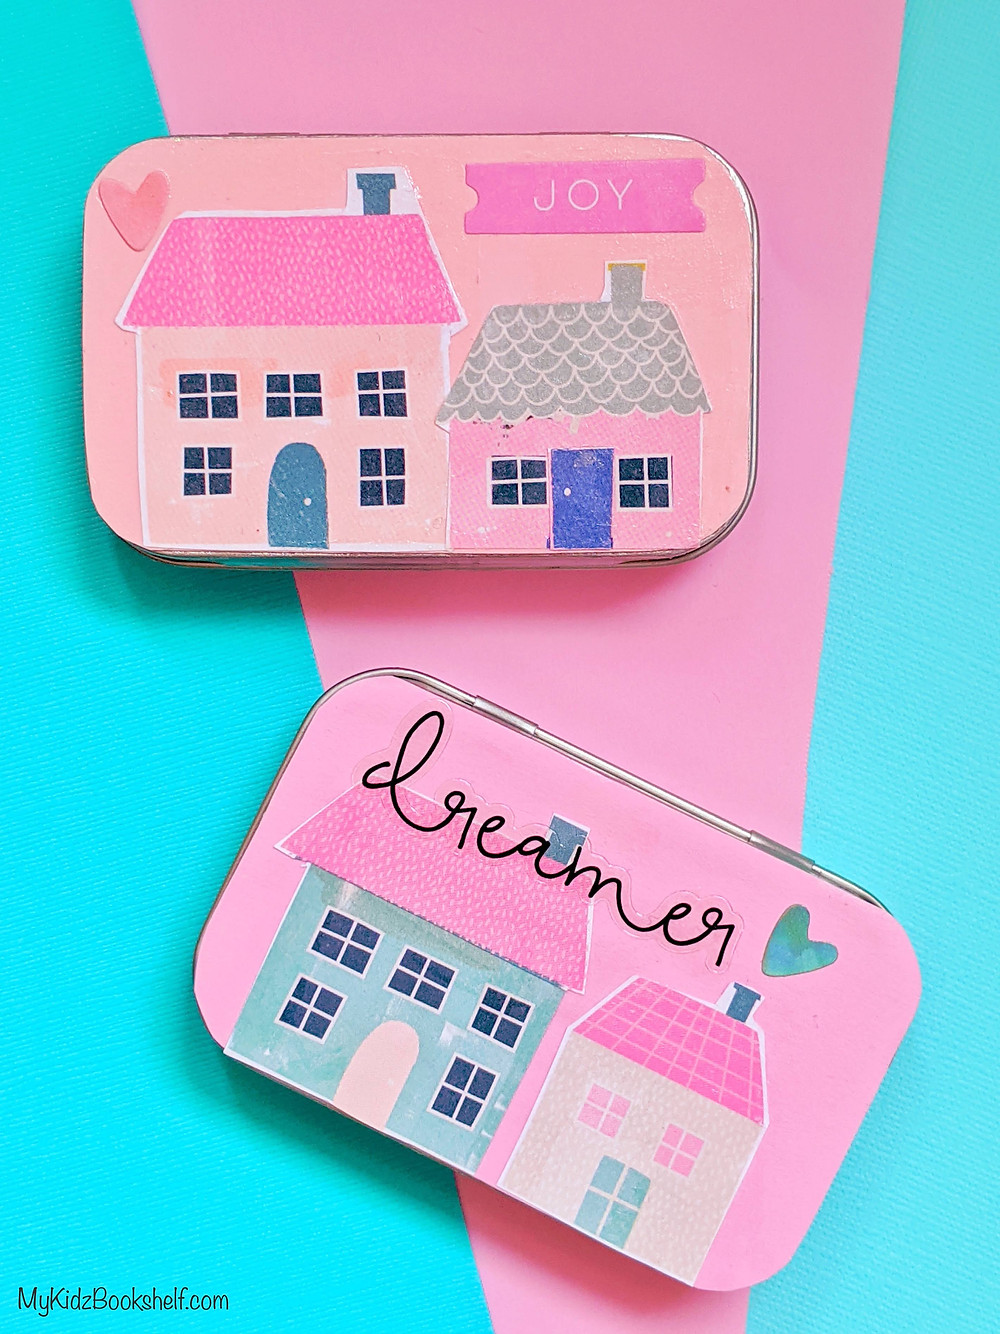 DIY Tiny House Tin box craft - a hinged tin with paper house images and words and hearts decoupaged onto cover